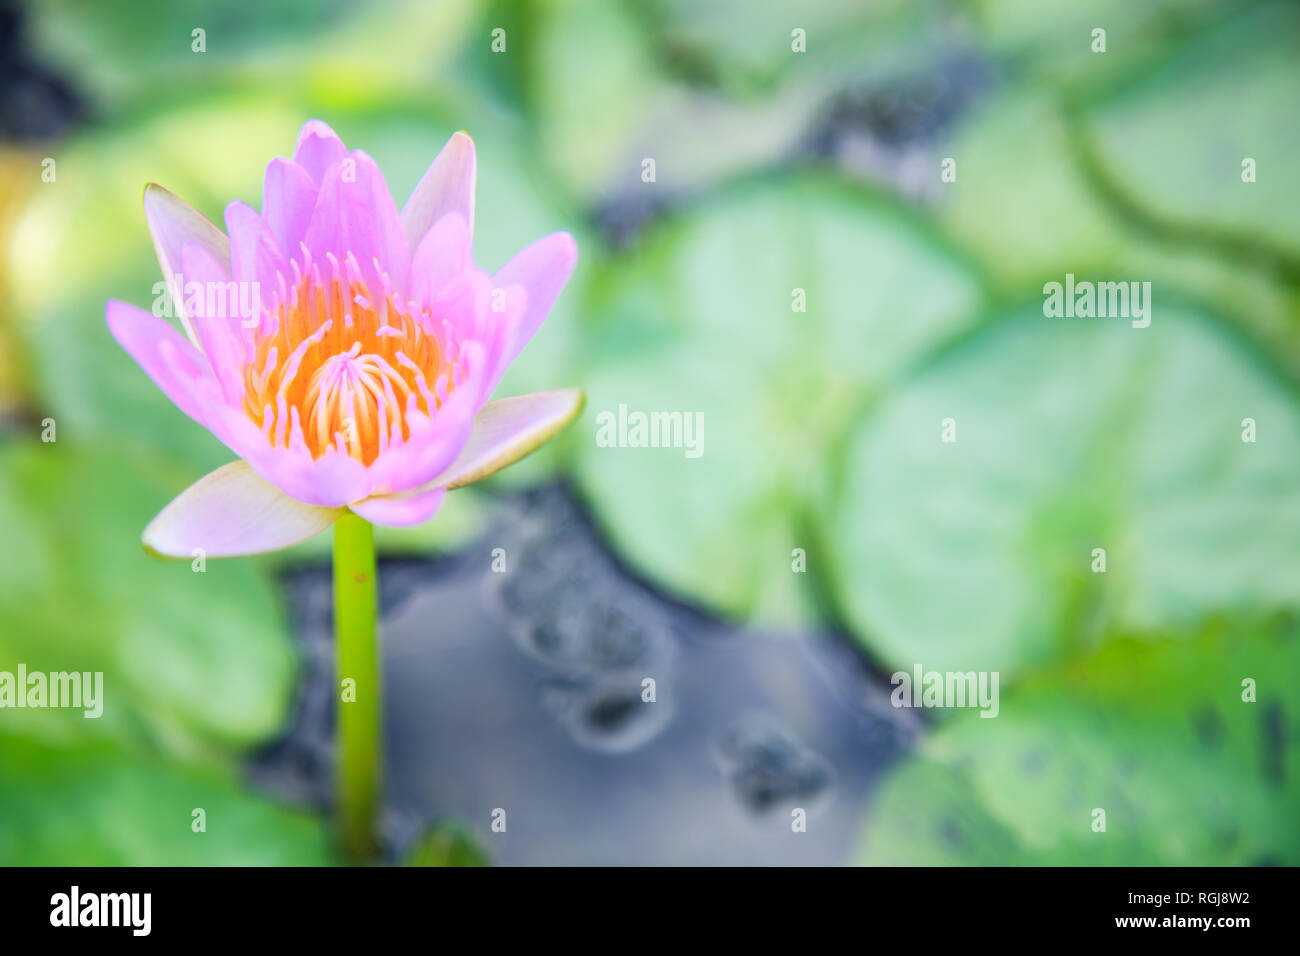 Beautiful Blossoming Aquatic Pink Color Water Lily Lotus Flower In